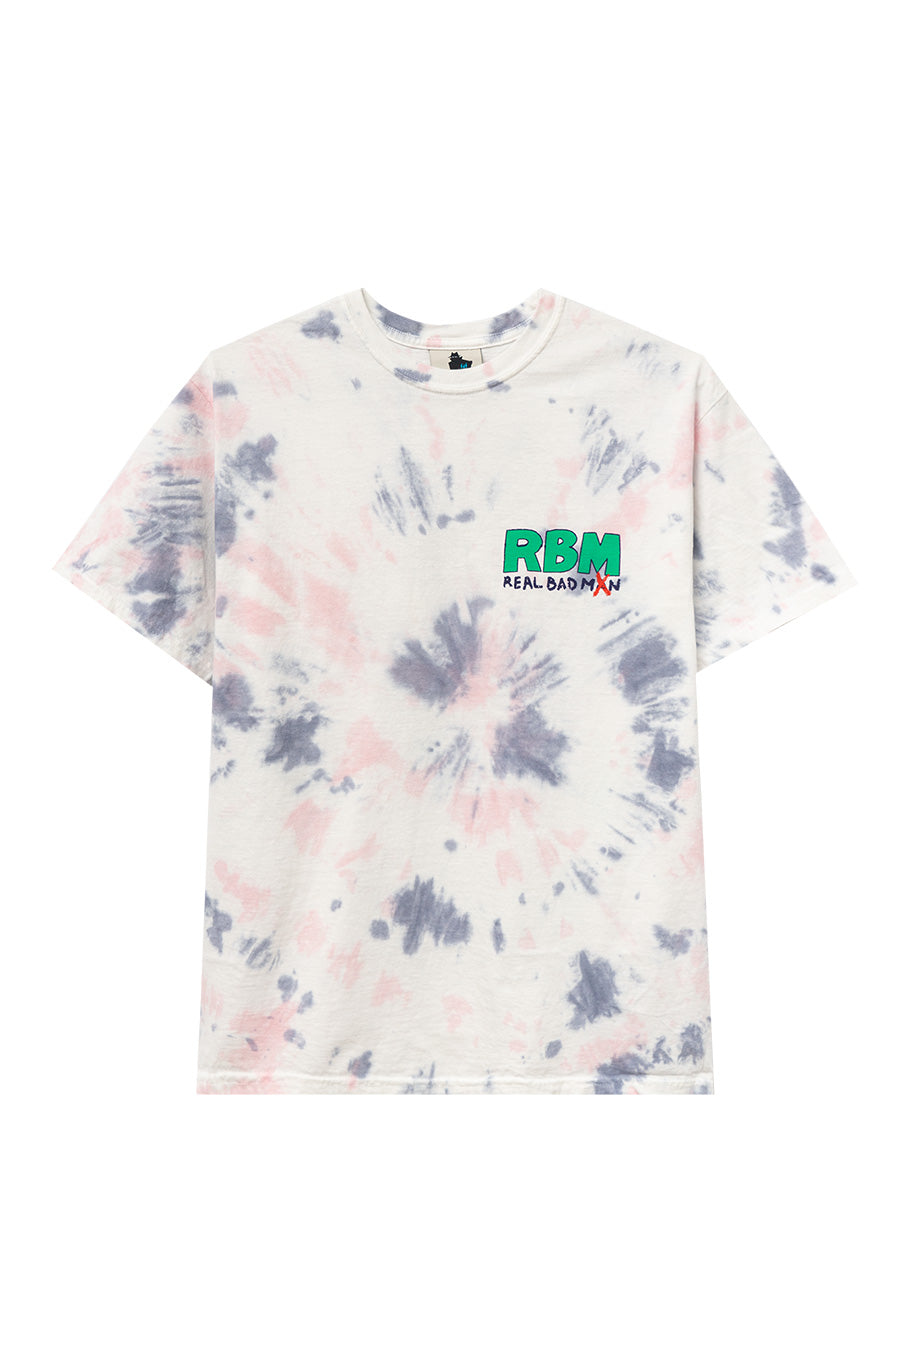 "Real Bad Man - White Tie Dye ""Who Me?"" T-Shirt 